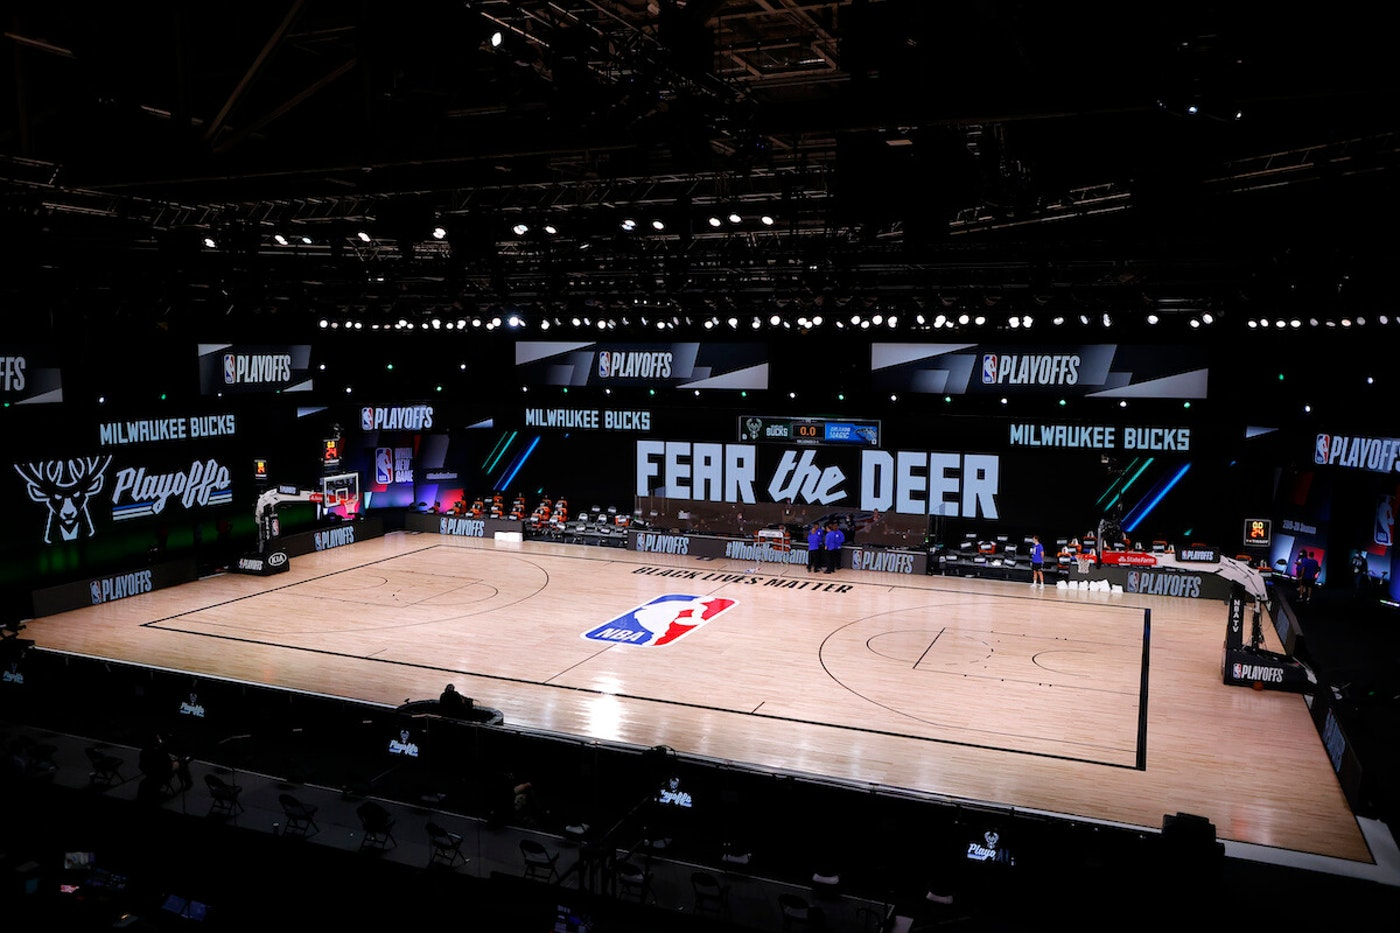 Referees huddle on an empty court at game time of a scheduled game between the Milwaukee Bucks and the Orlando Magic for Game Five of the Eastern Conference First Round during the 2020 NBA Playoffs at AdventHealth Arena at ESPN Wide World Of Sports Complex on August 26, 2020 in Lake Buena Vista, Florida. (Photo by Kevin C. Cox/Getty Images)